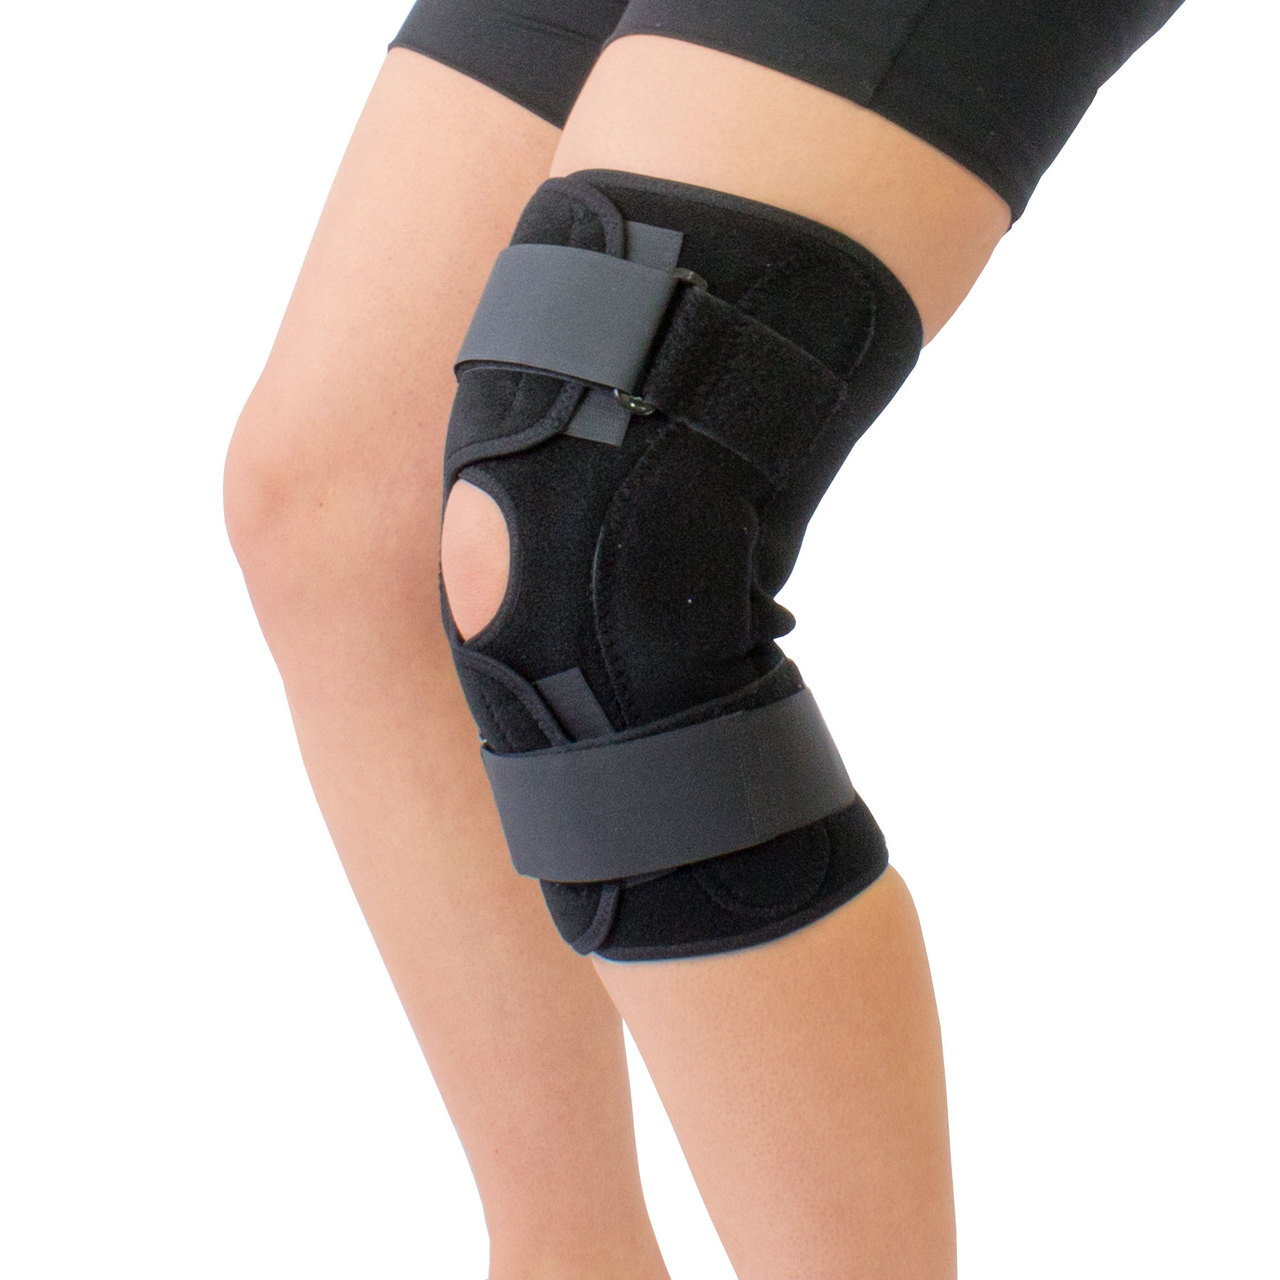 23a92a0d3c Obesity Knee Brace Bariatric Plus Size Torn ACL. Image 1